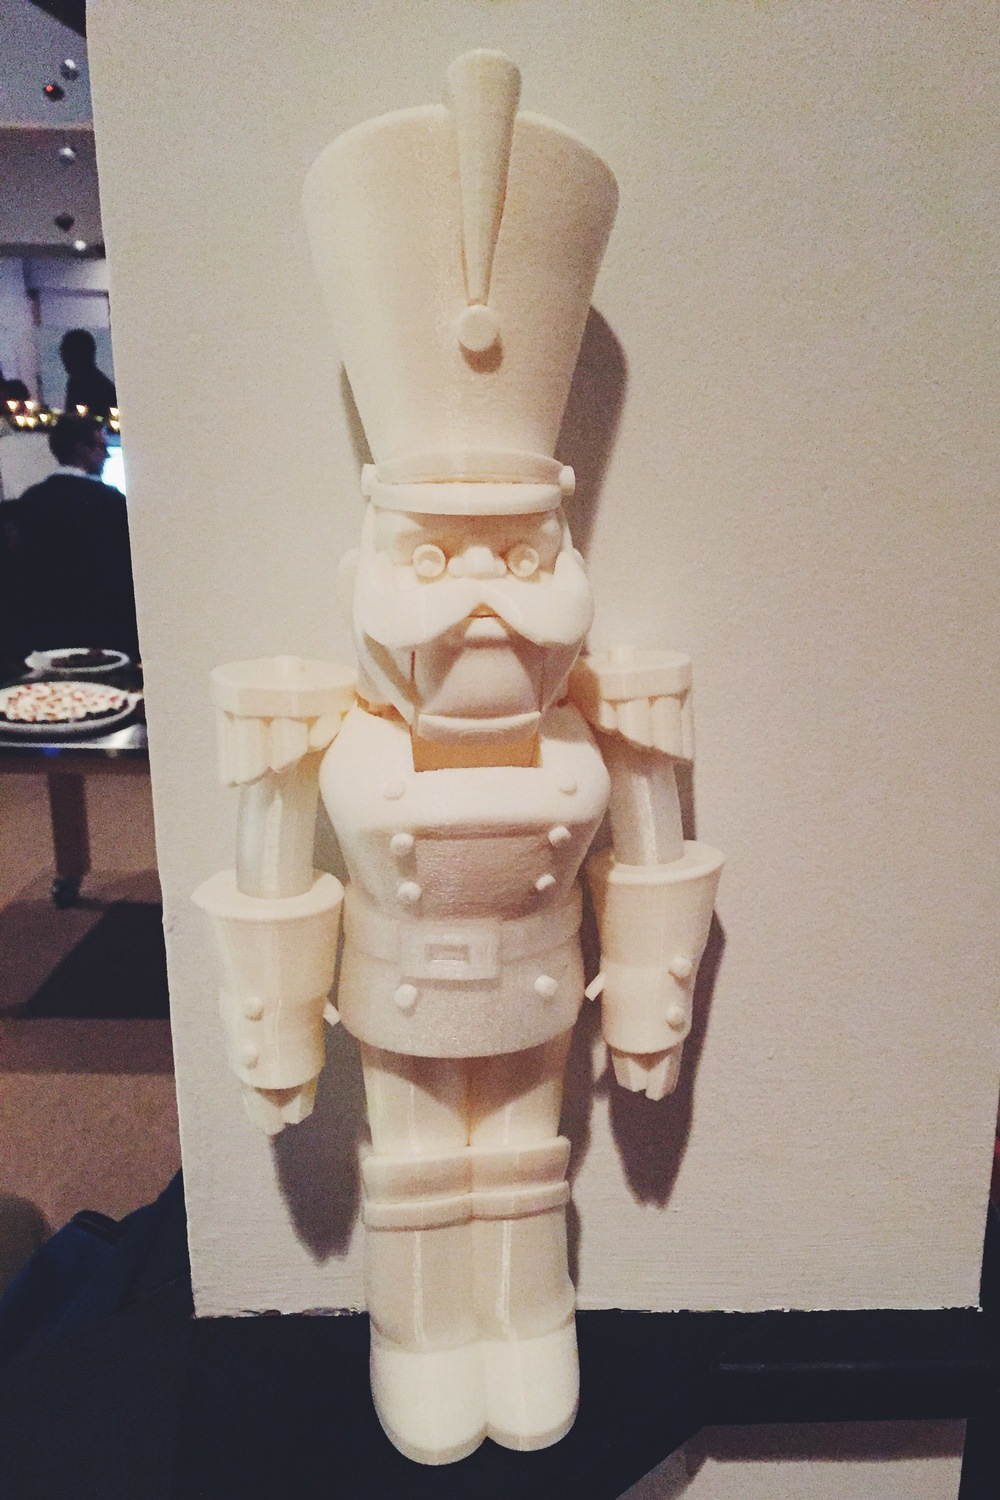 Kevin's nutcracker, standing over 16 inches tall, this guyprinted in35 separate files